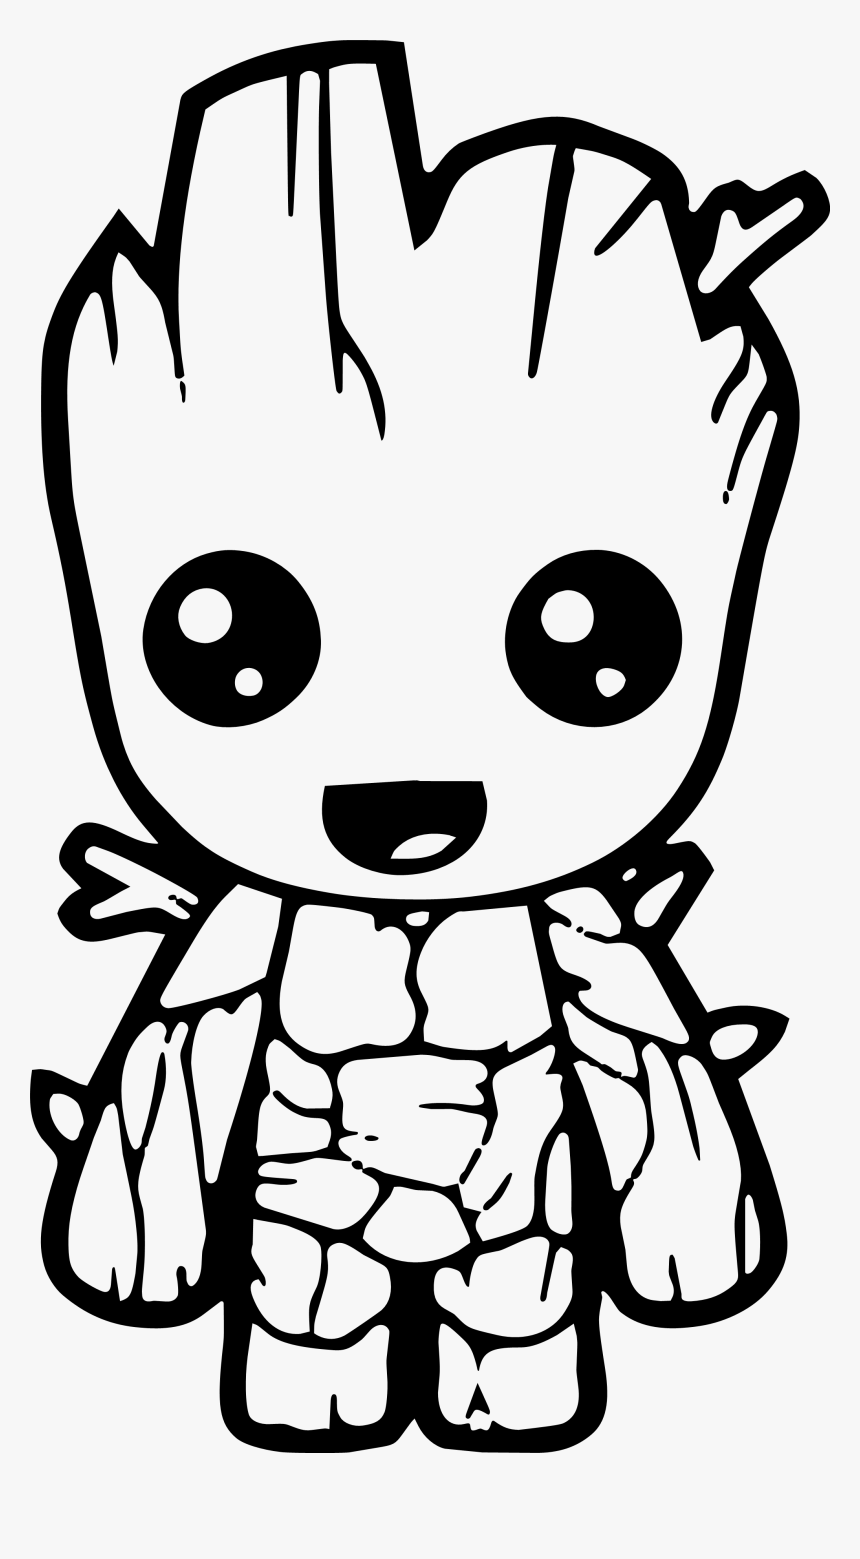 Cute Superhero Coloring Pages, HD Png Download, Free Download